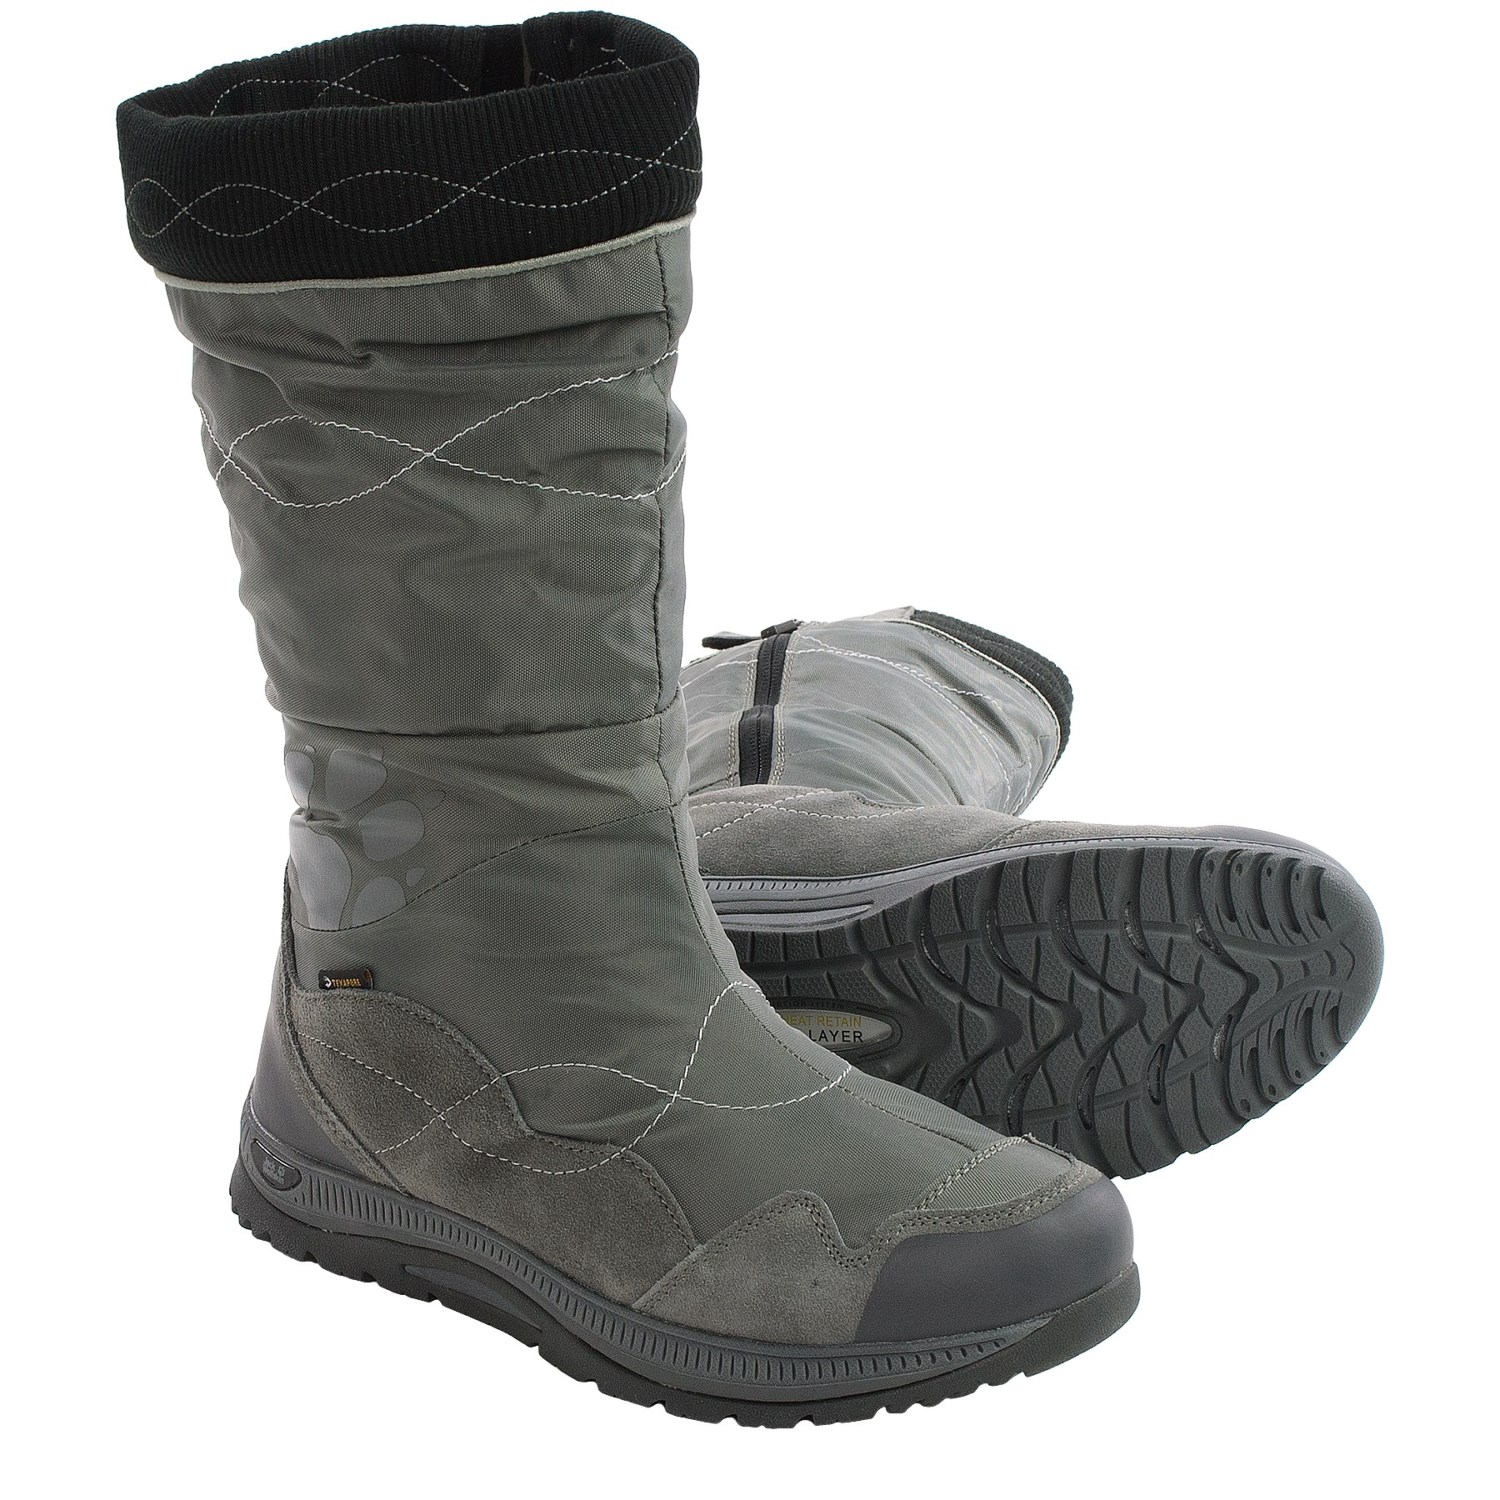 jack wolfskin fairbanks texapore snow boots waterproof insulated for women in dark steel. Black Bedroom Furniture Sets. Home Design Ideas